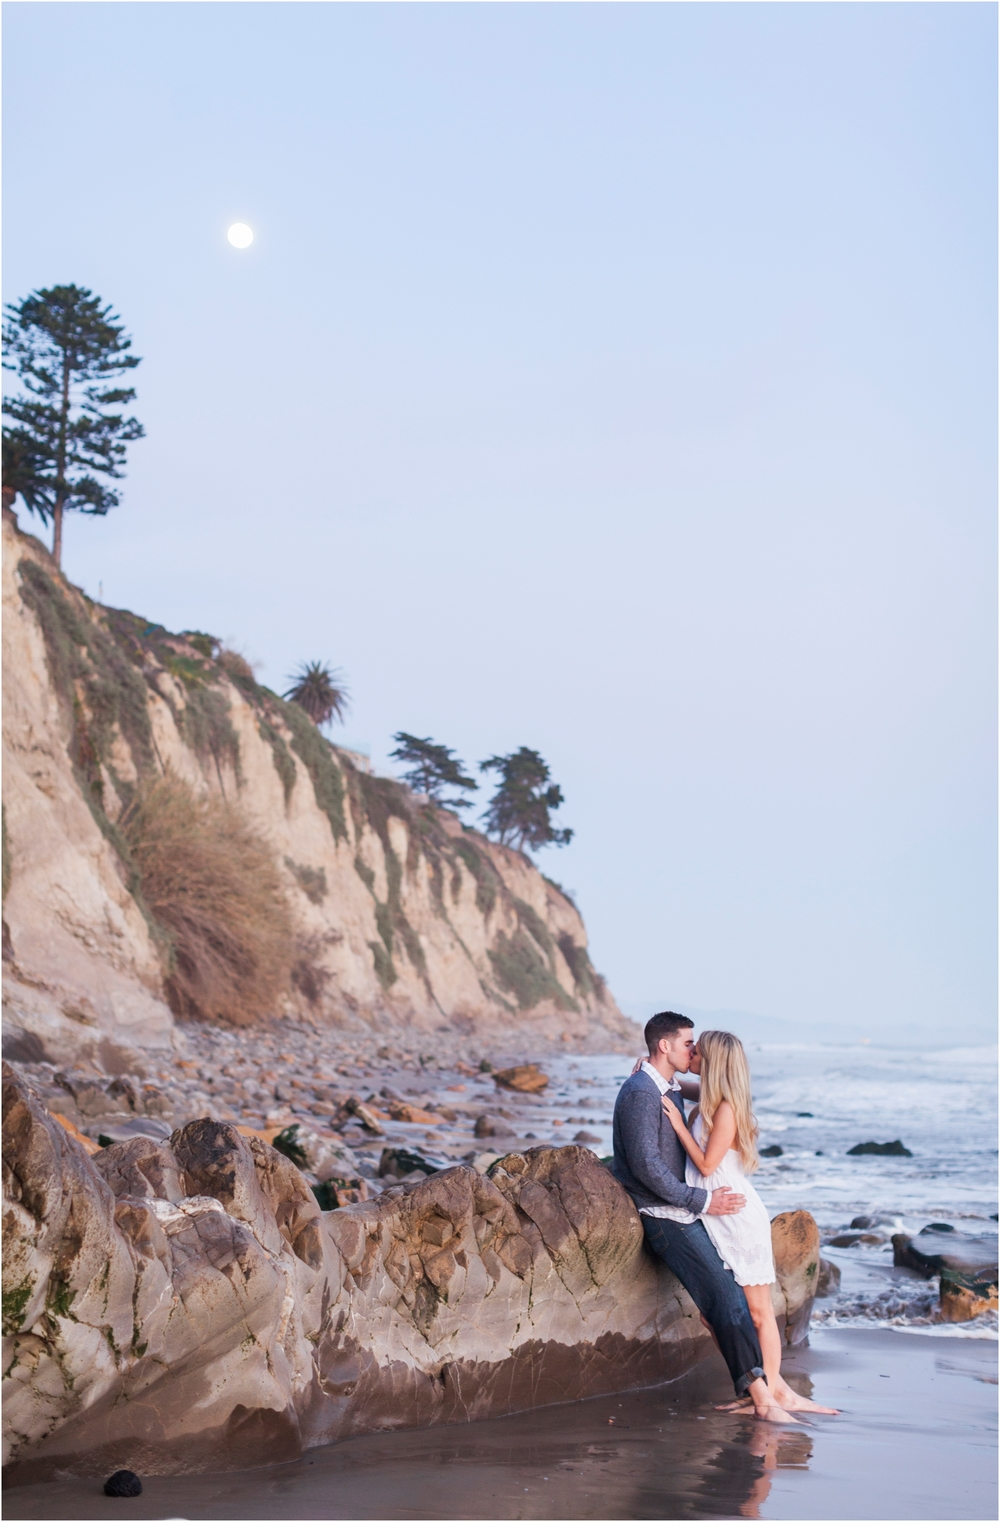 Santa Barbara Wedding Photographer Skyla Walton